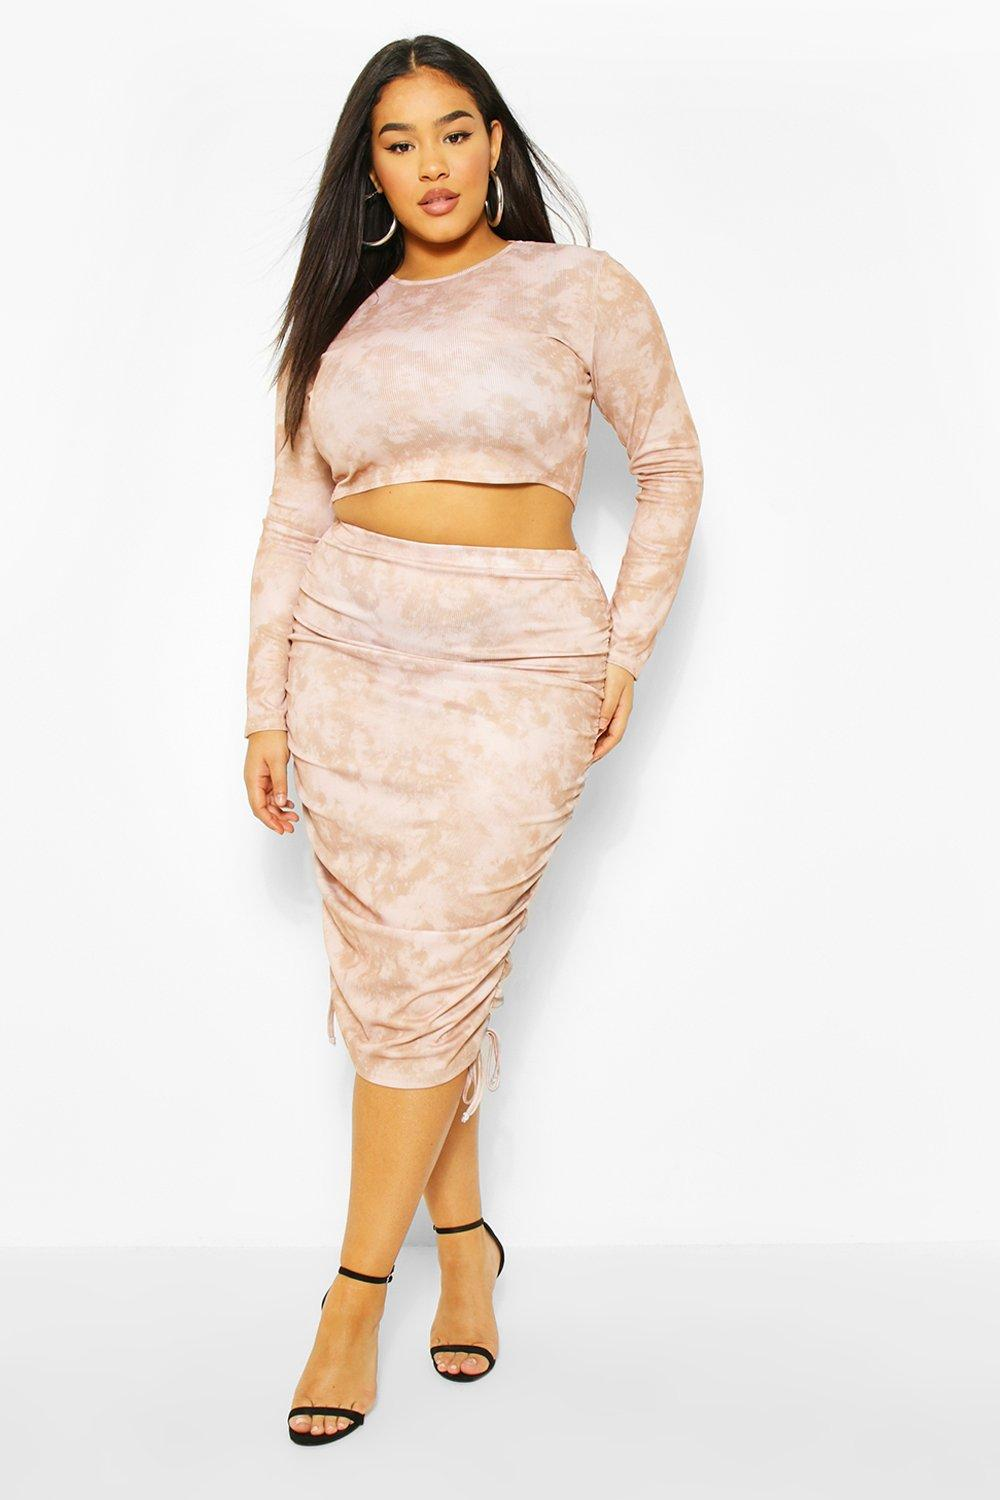 Plus Tie Dye Ruched Mini Skirt And Top Co-ord 15